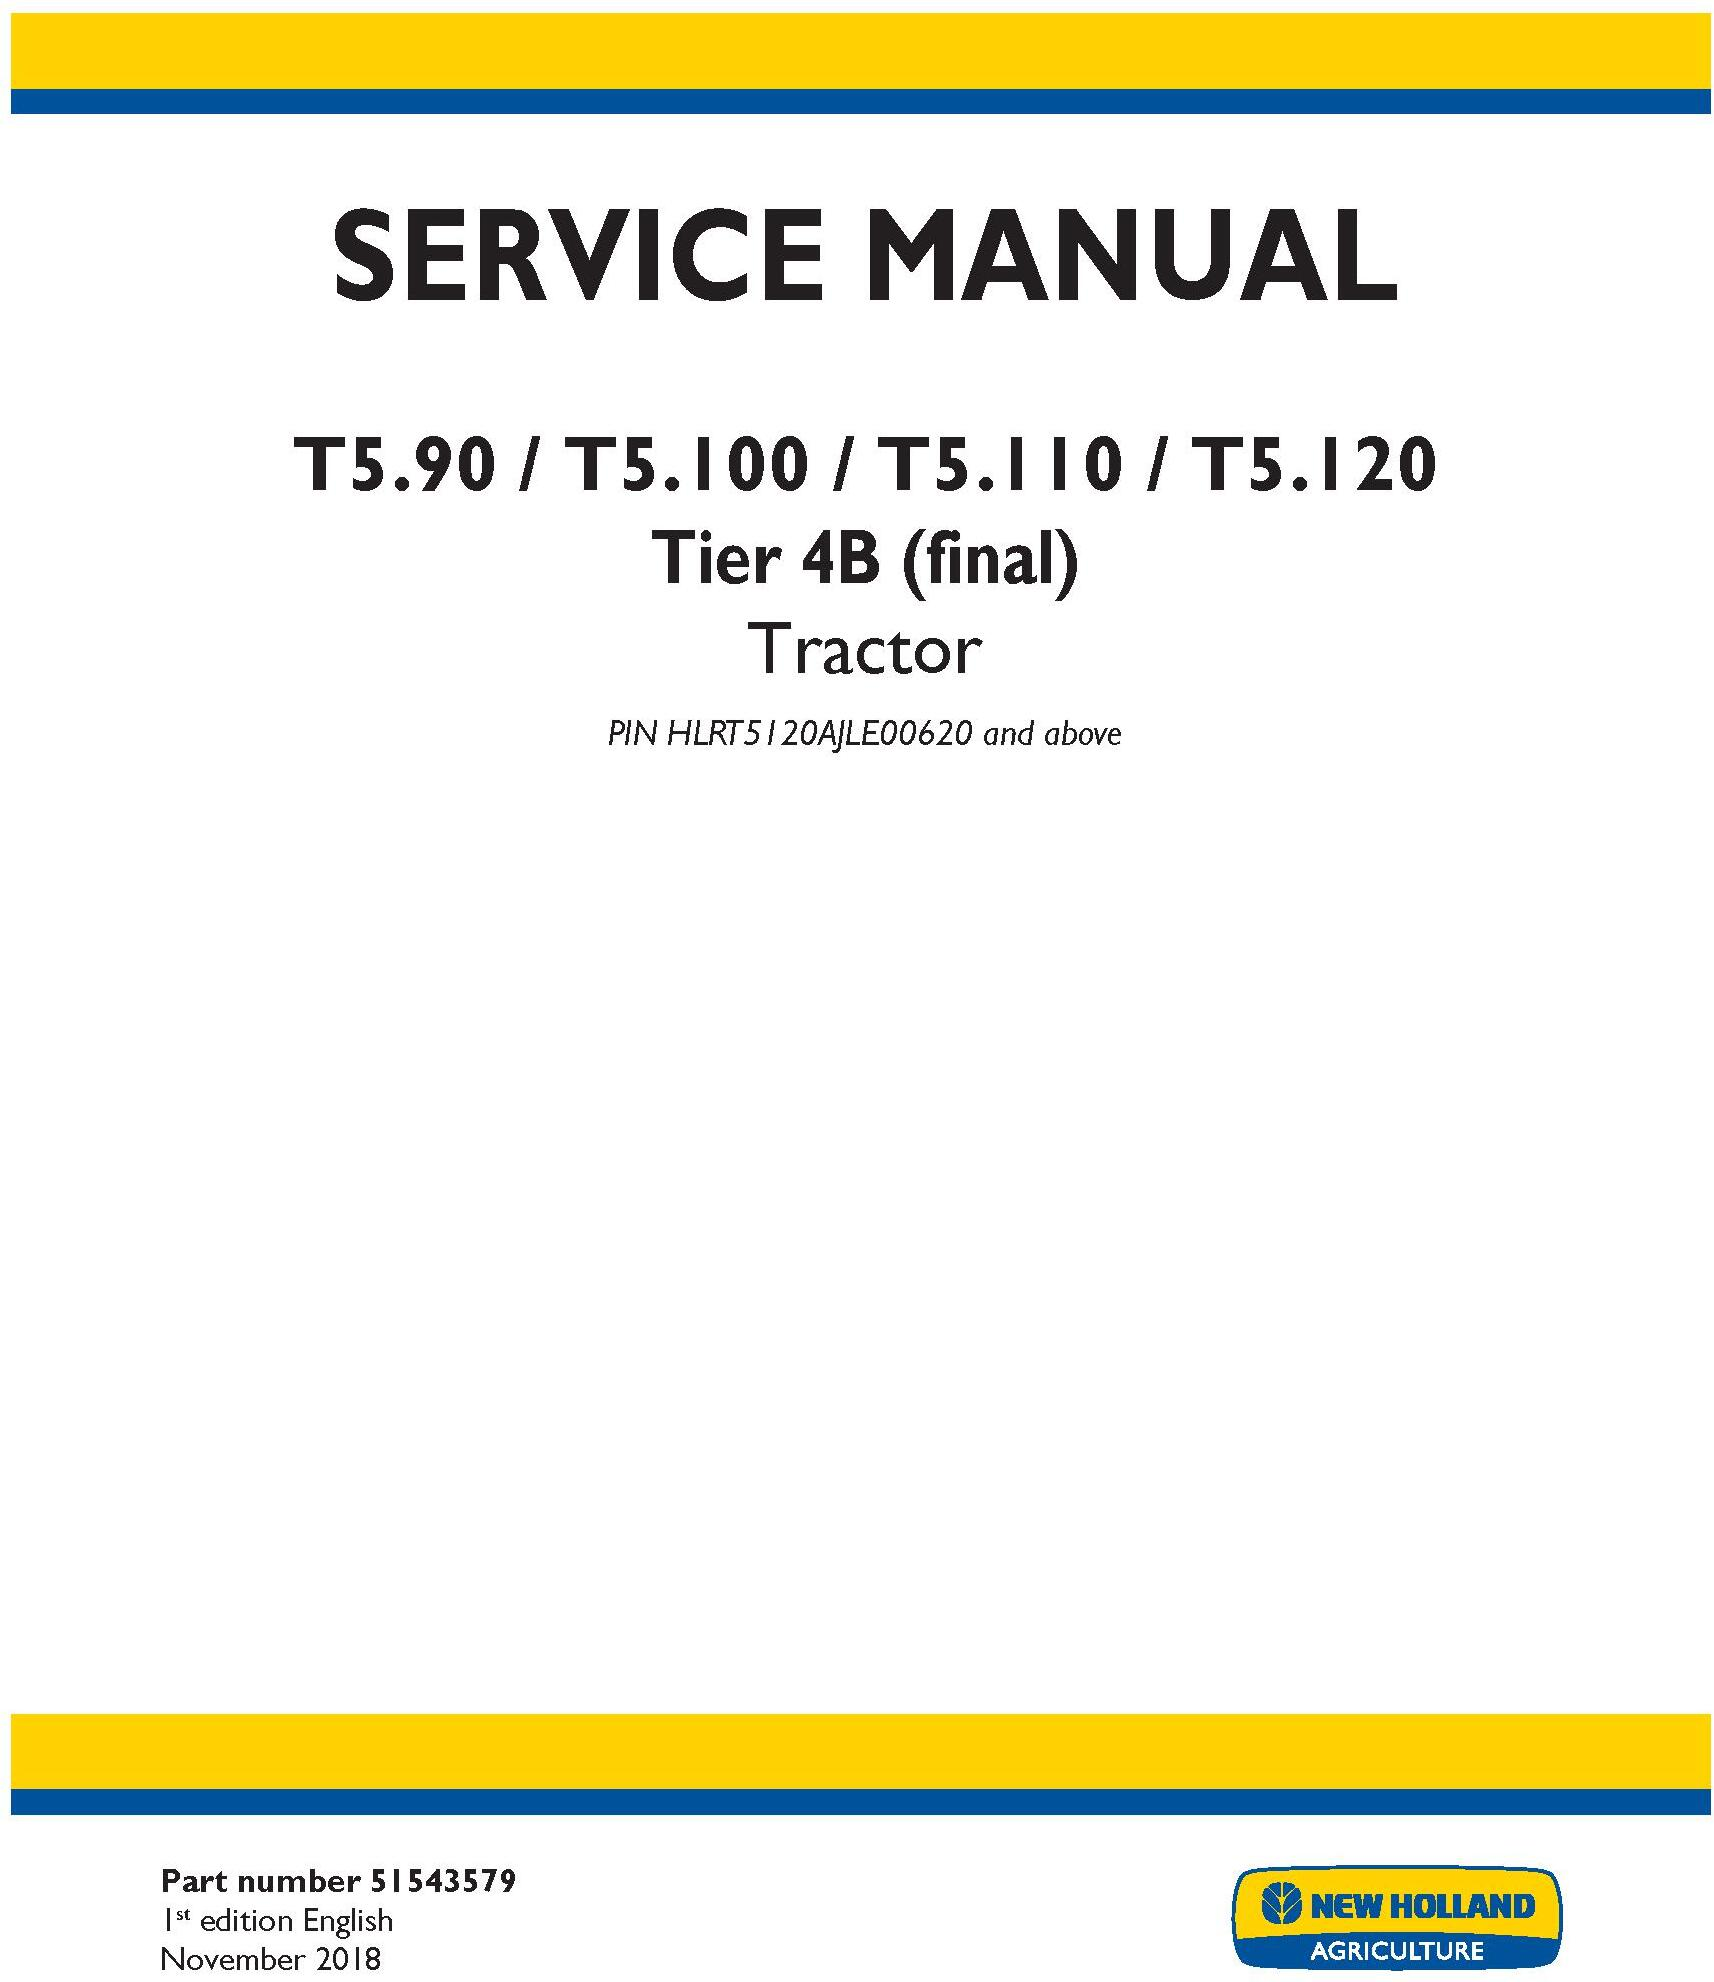 New Holland T5.90, T5.100, T5.110, T5.120 Tier 4B (final) Tractor Service Manual (North America) - 19530